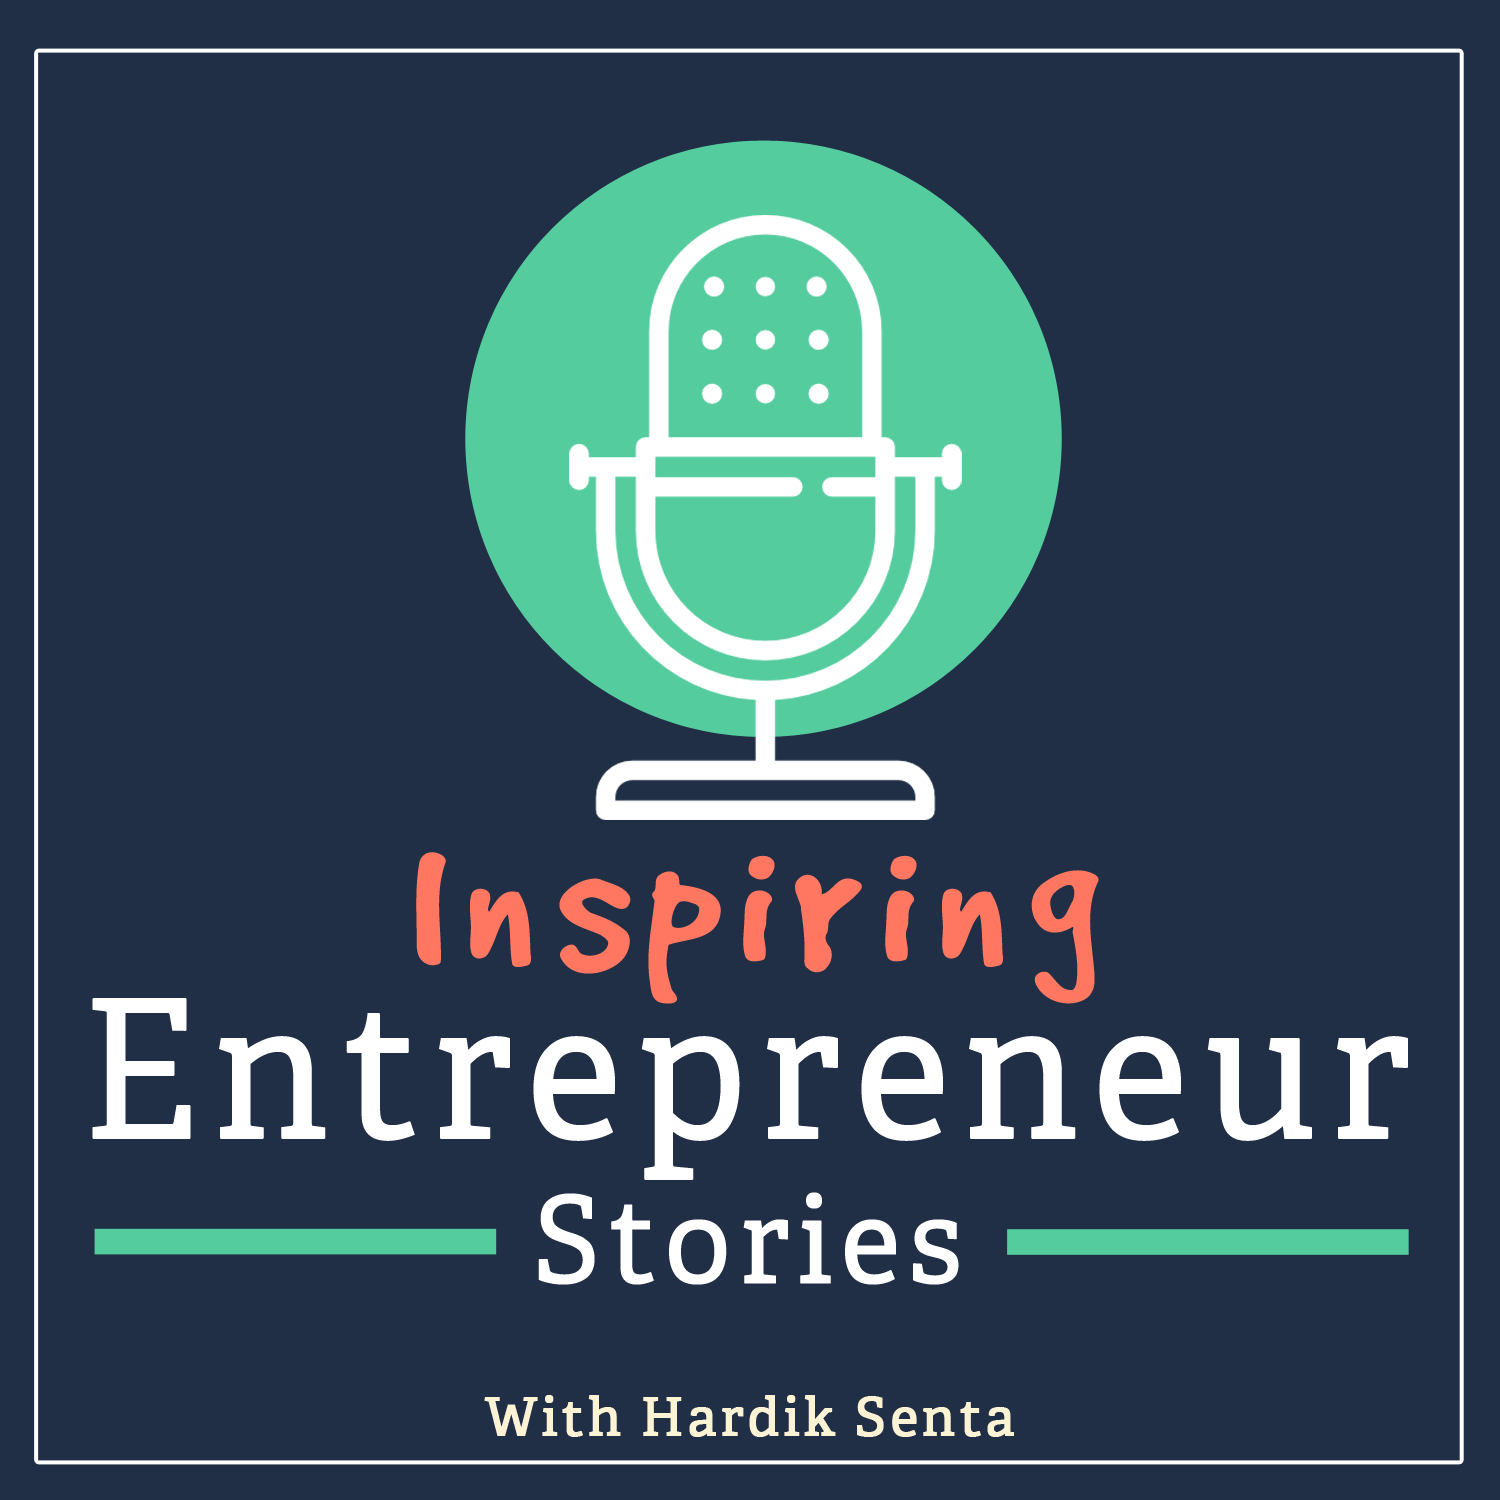 introducing : Inspiring Entrepreneur Stories